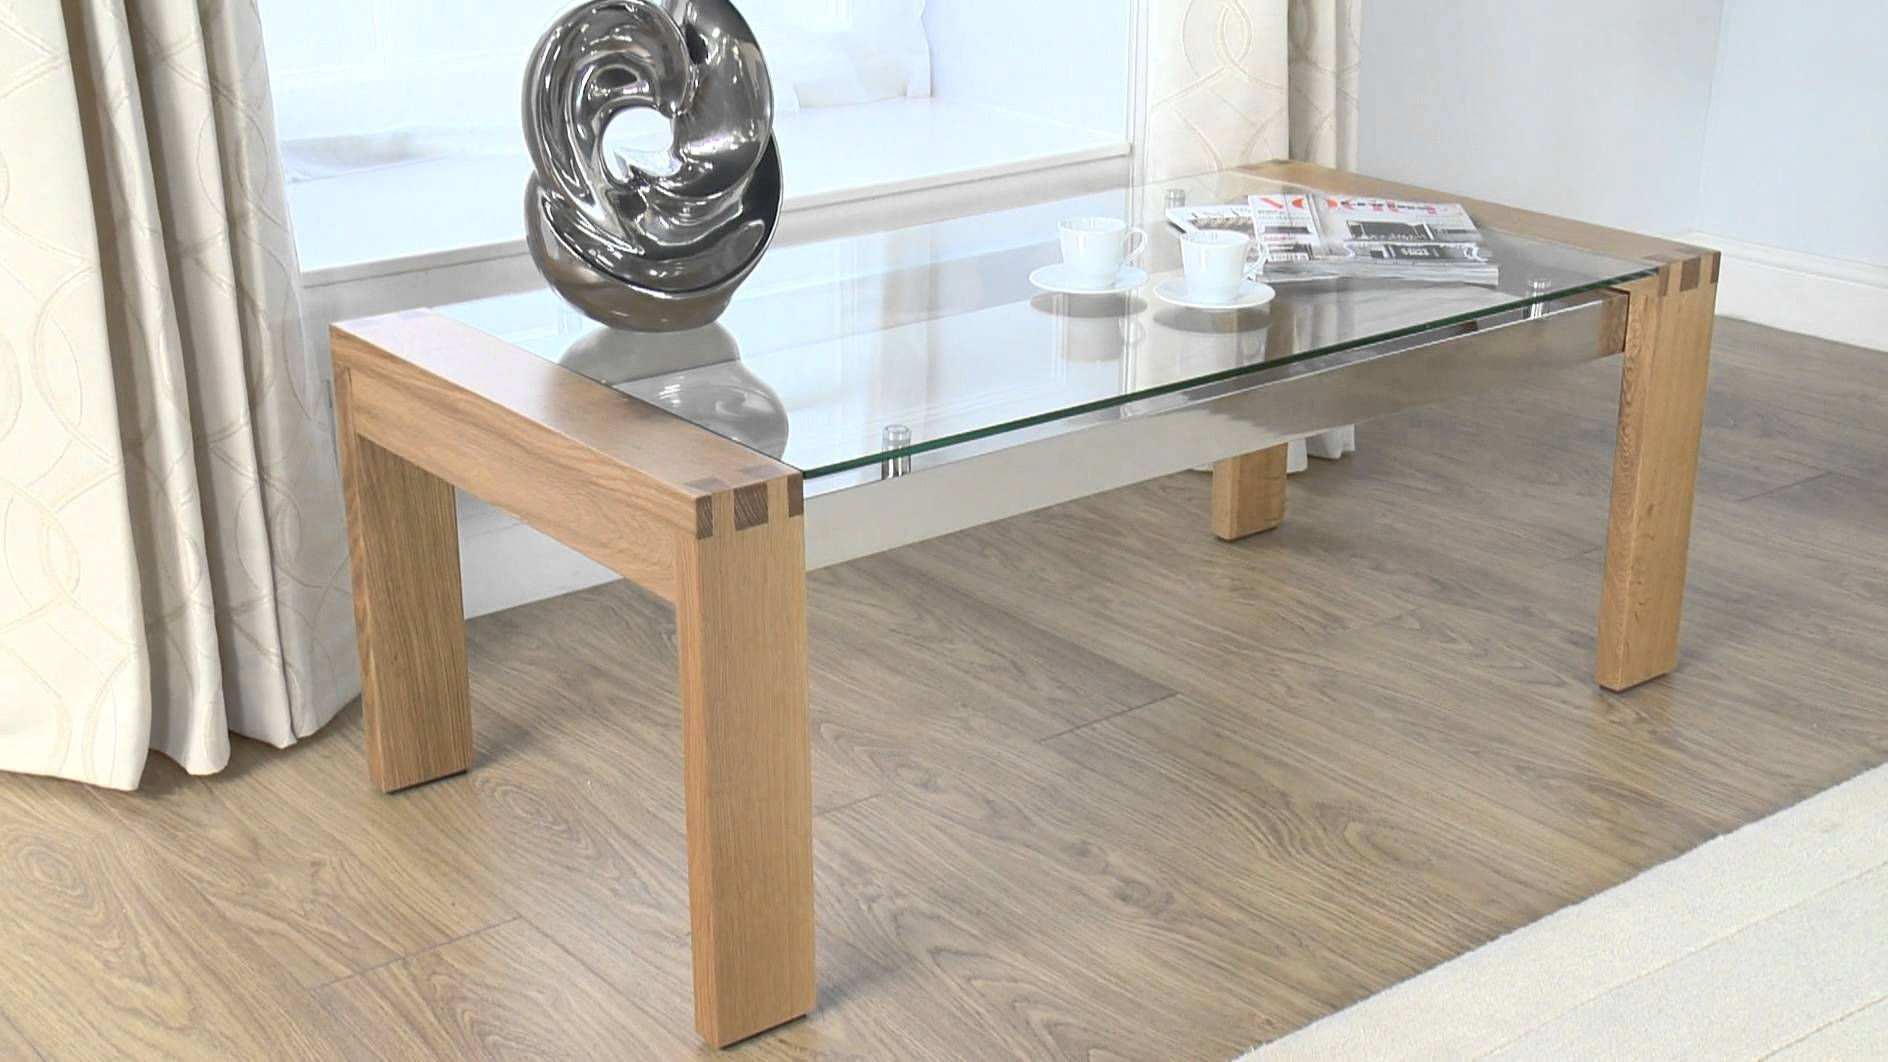 Wood And Metal Coffee Table Design Images Photos Pictures in Cheap Oak Coffee Tables (Image 29 of 30)